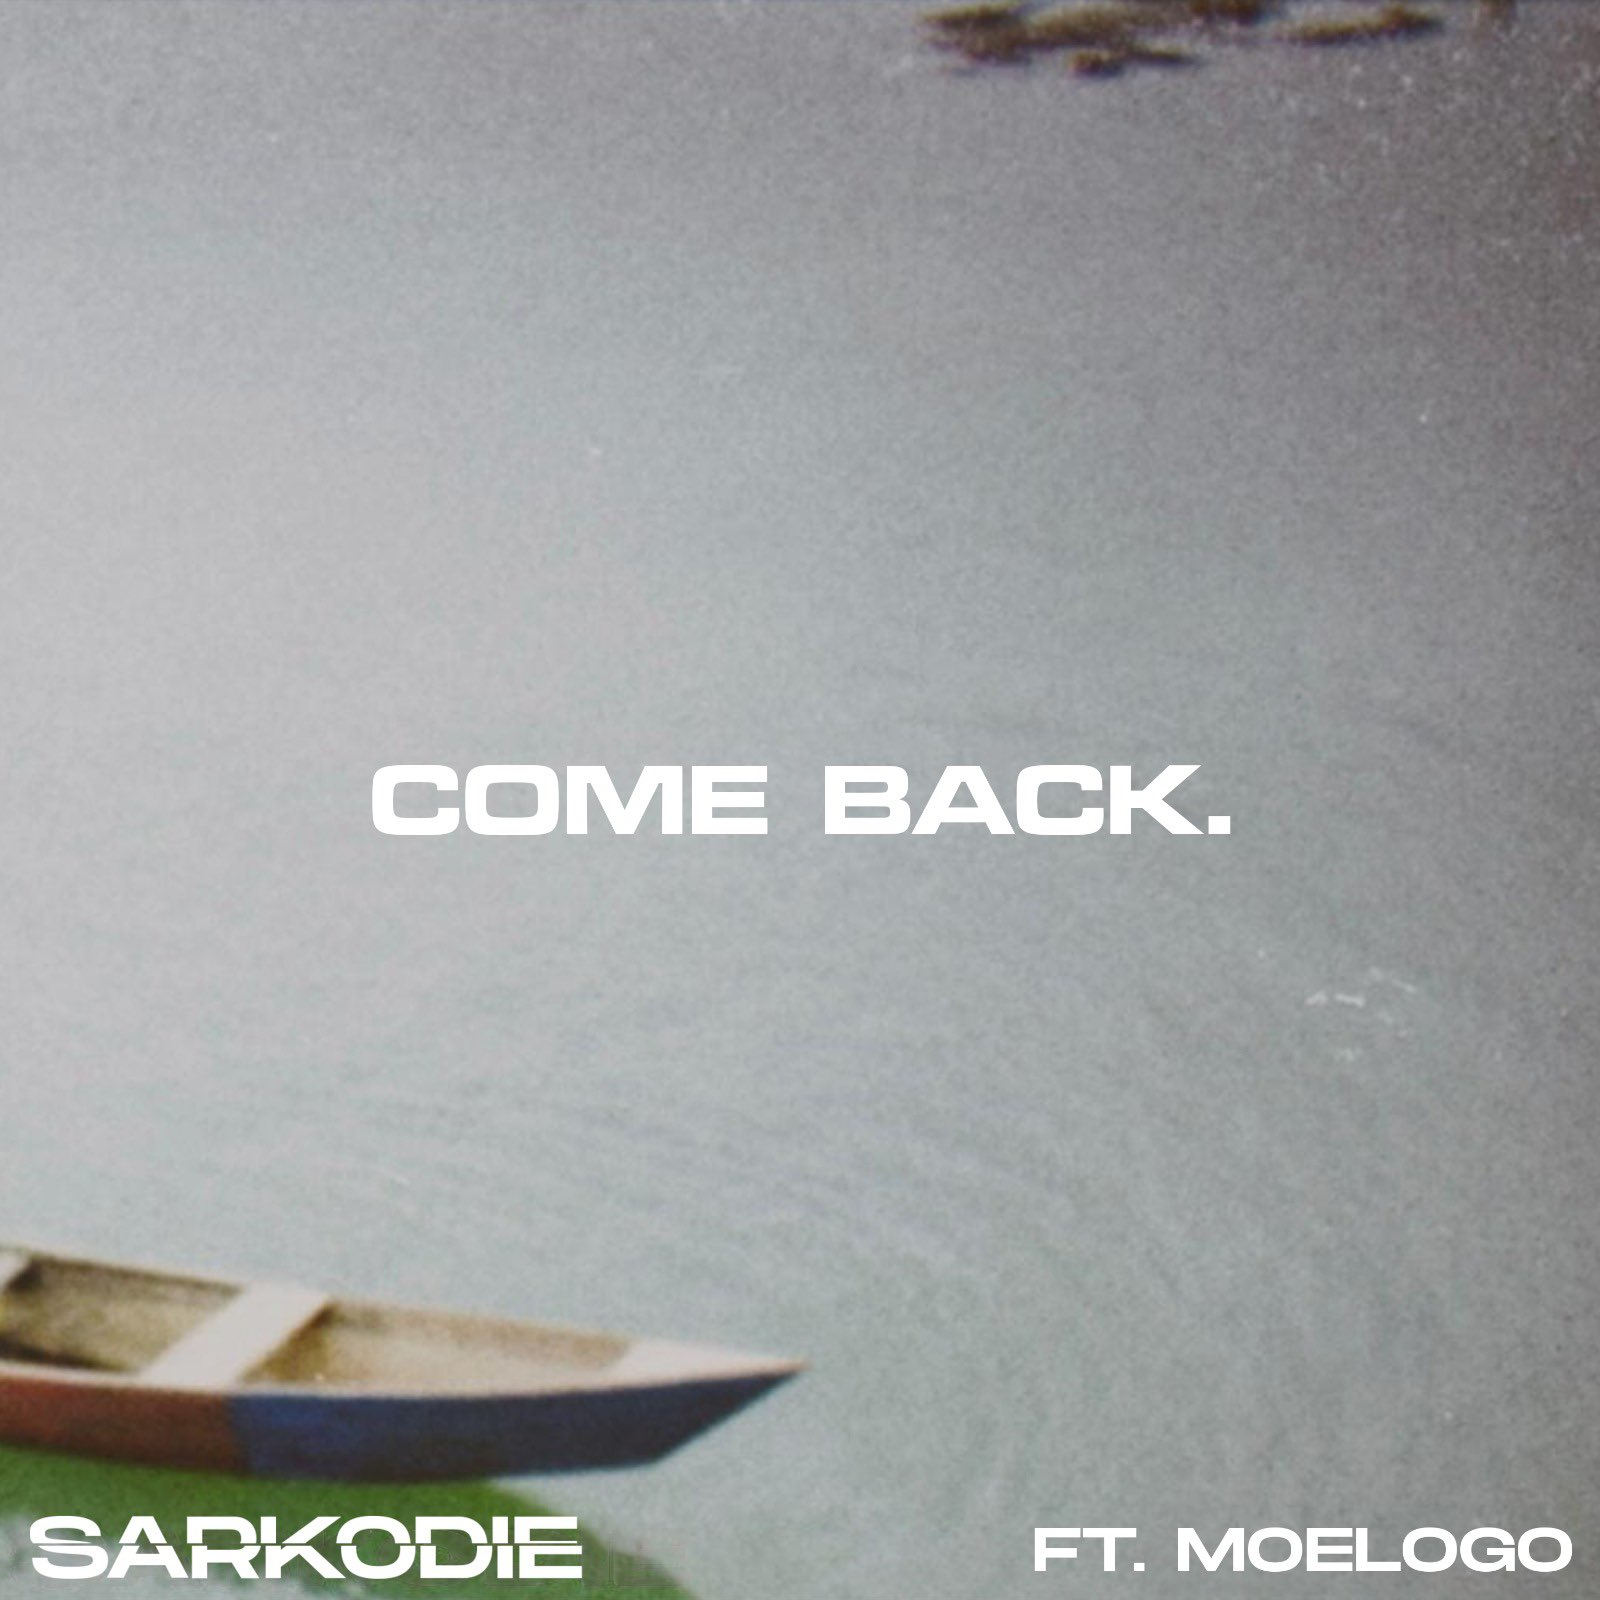 Sarkodie Kicks Off 2021 With New Song 'Come Back' Featuring Moelogo